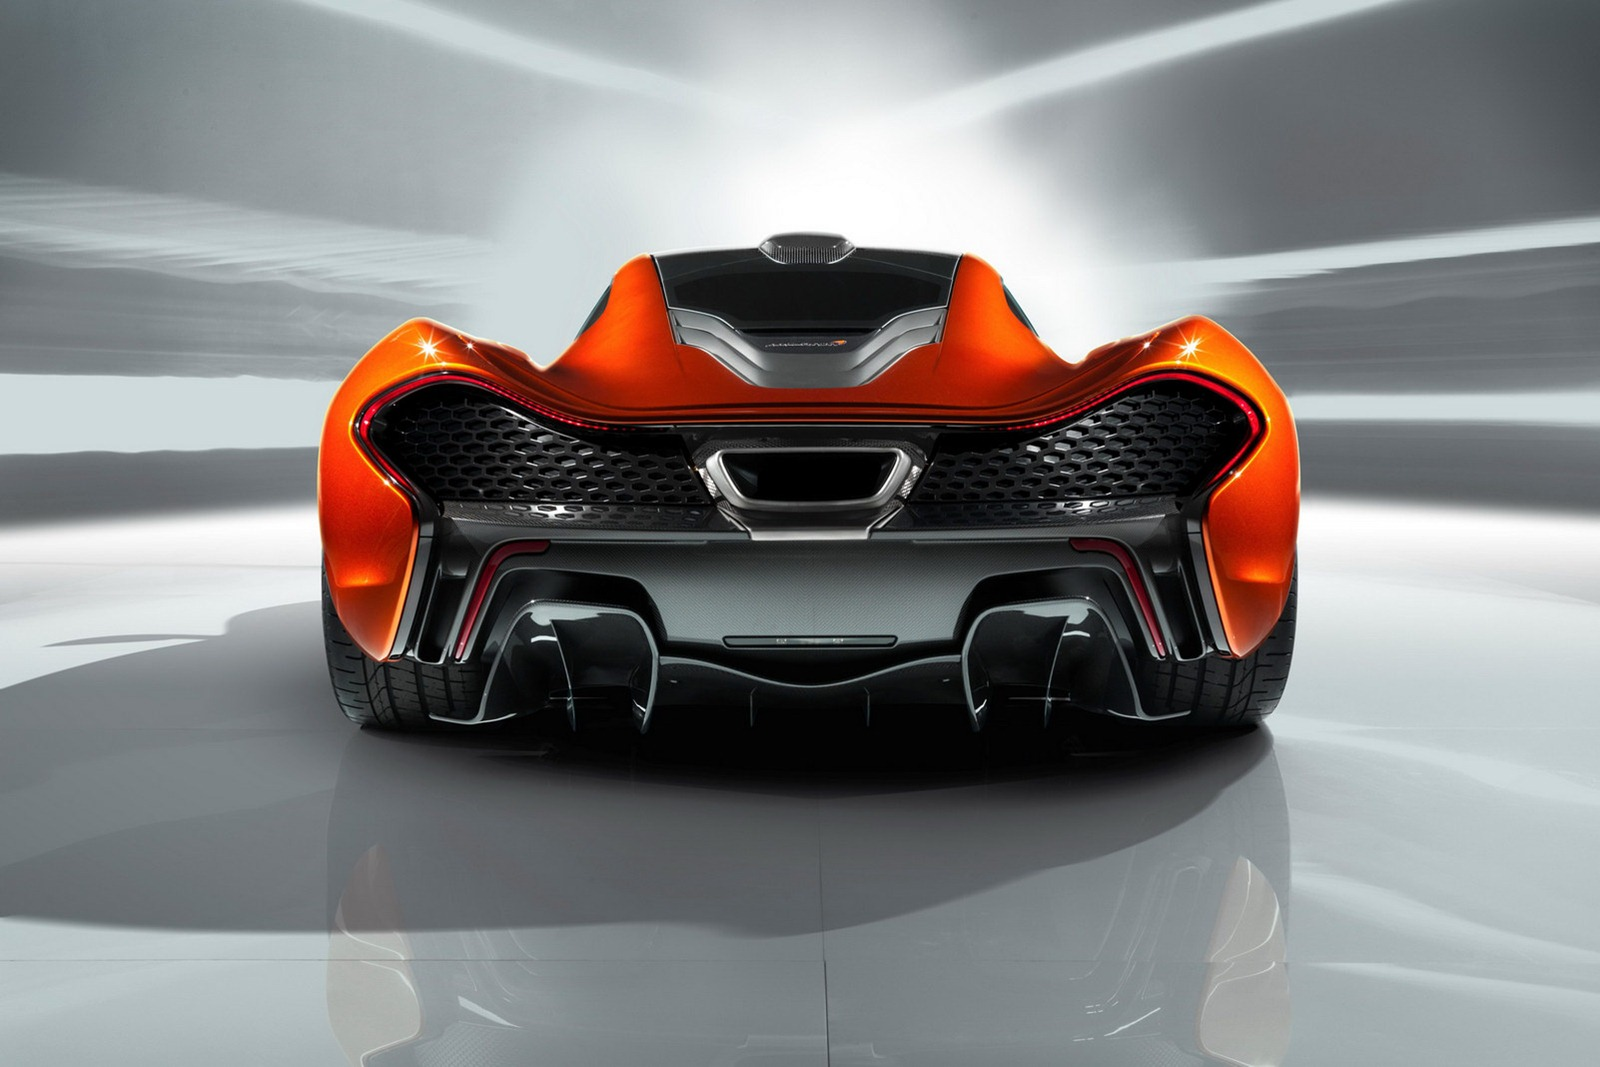 Pictures Of Mclaren Supercar Leak